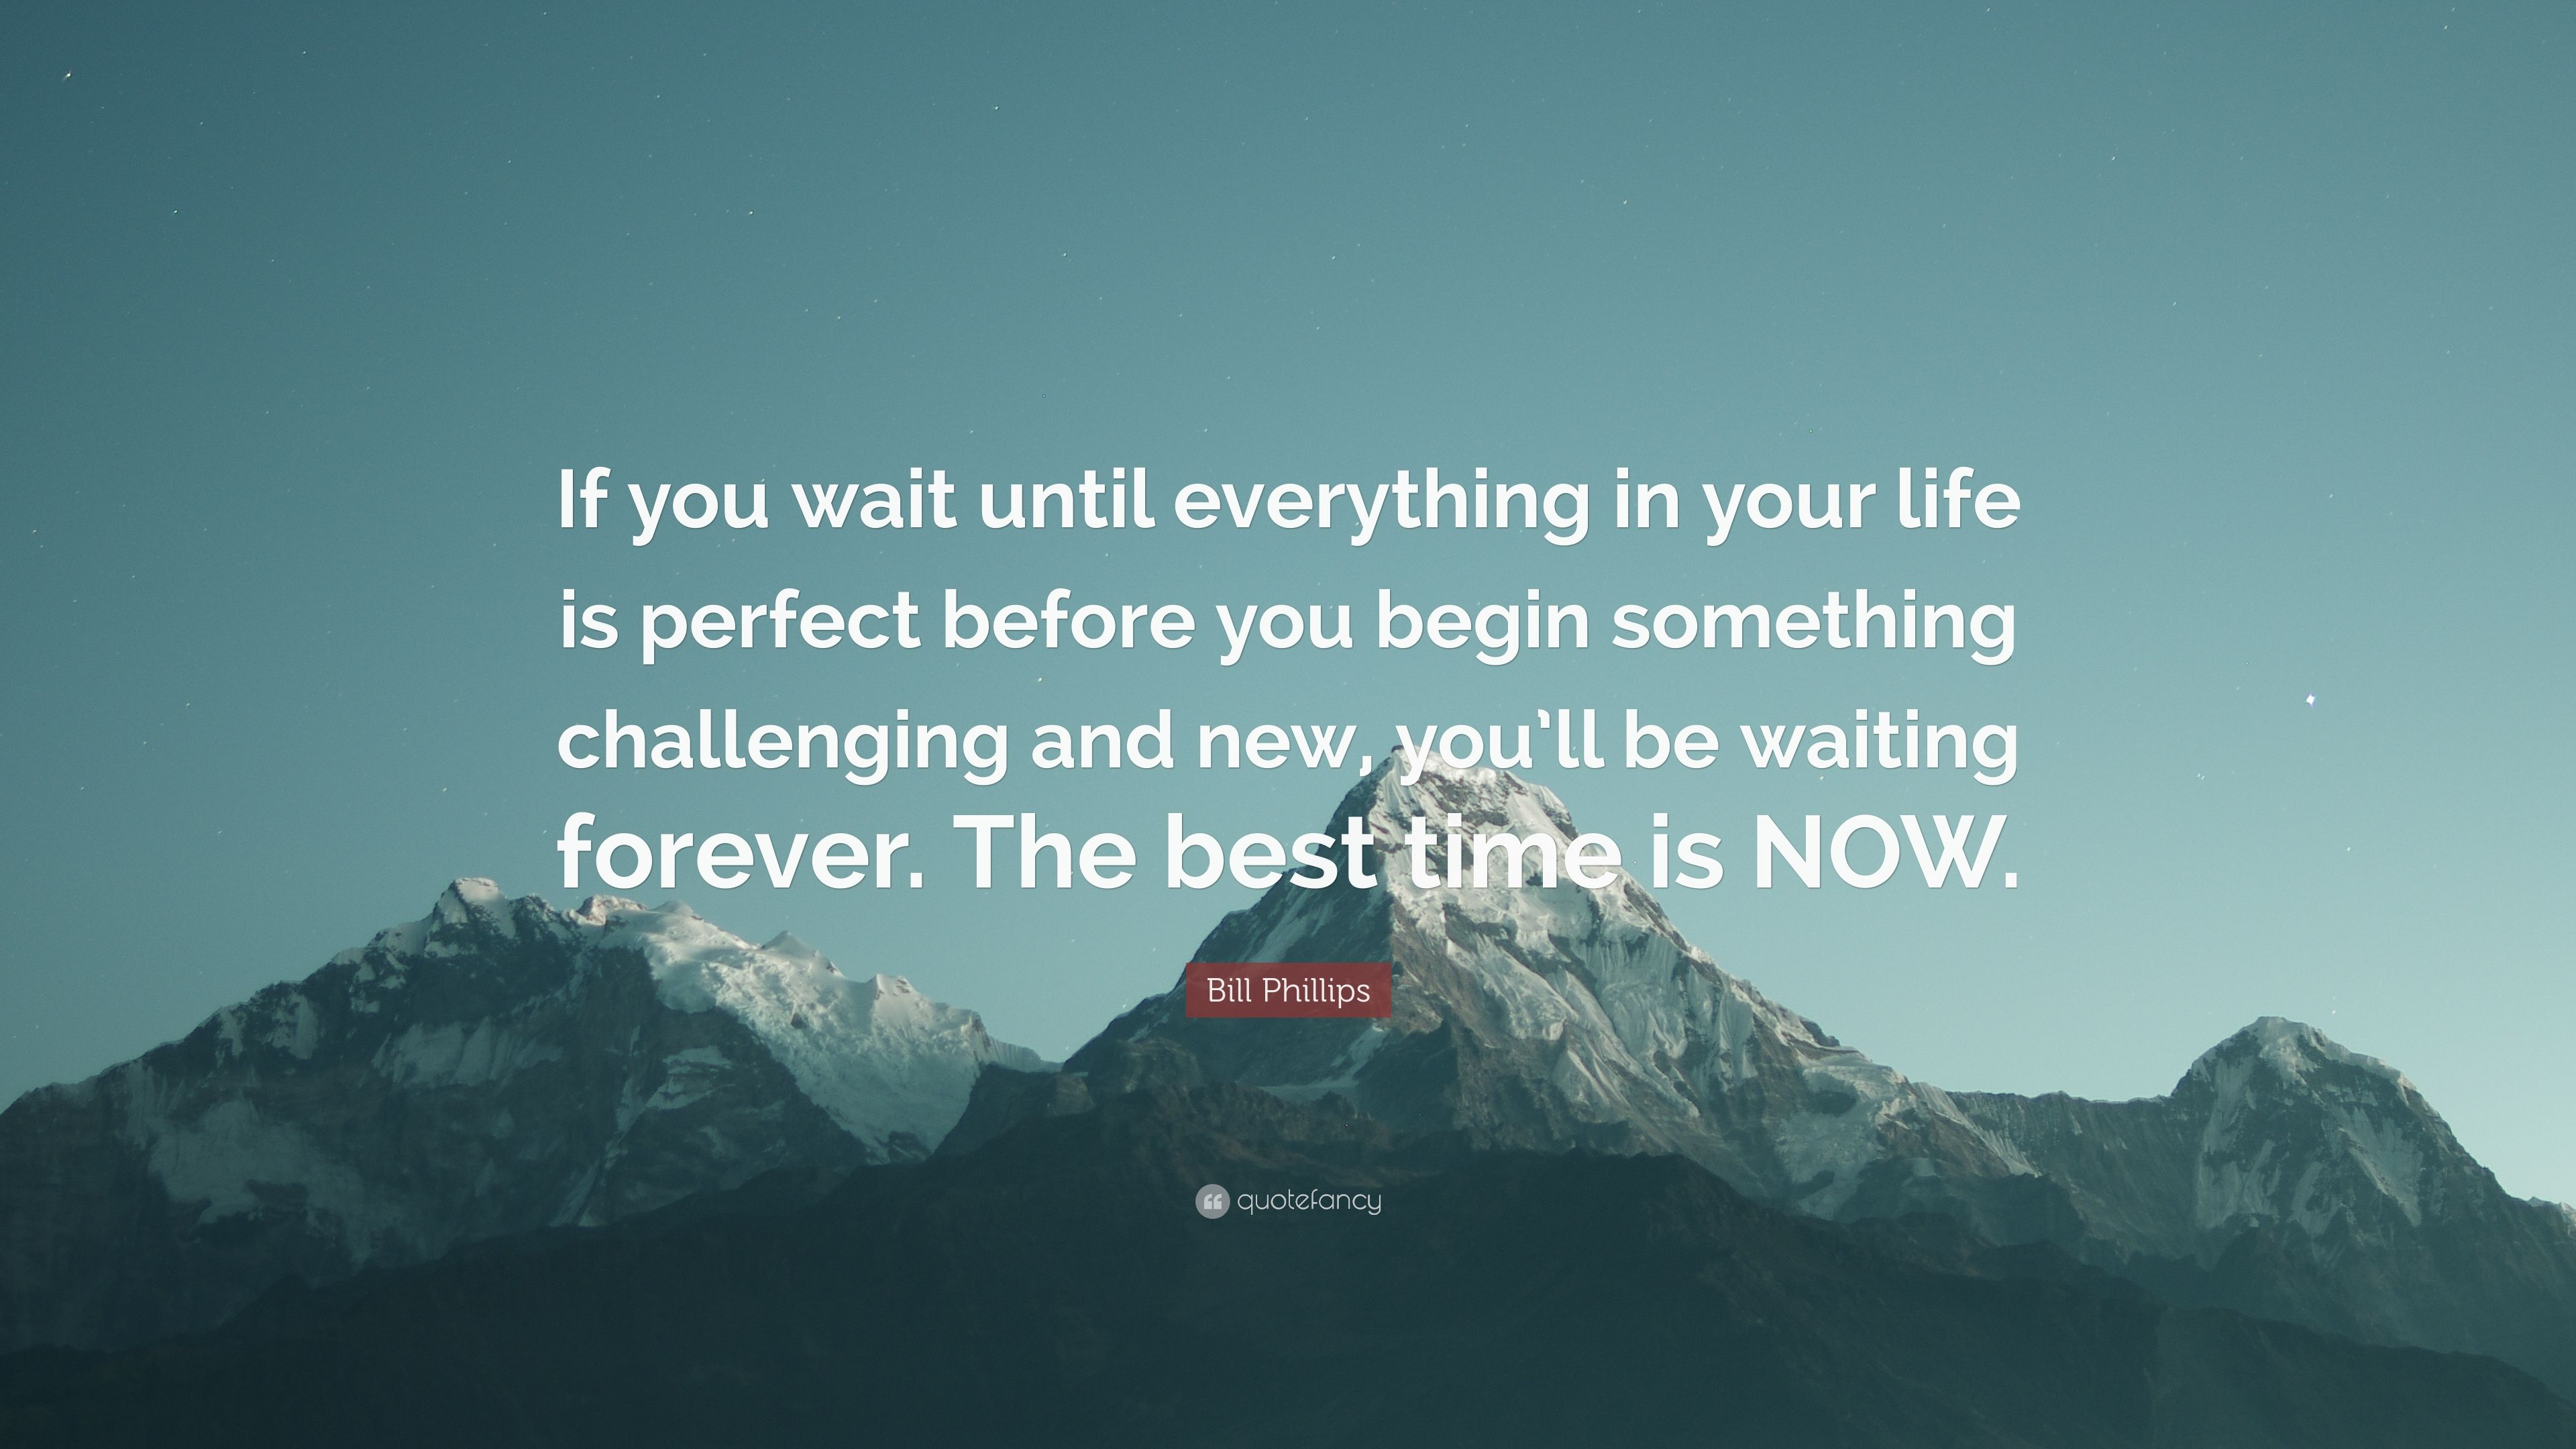 bill phillips quote if you wait until everything in your life is